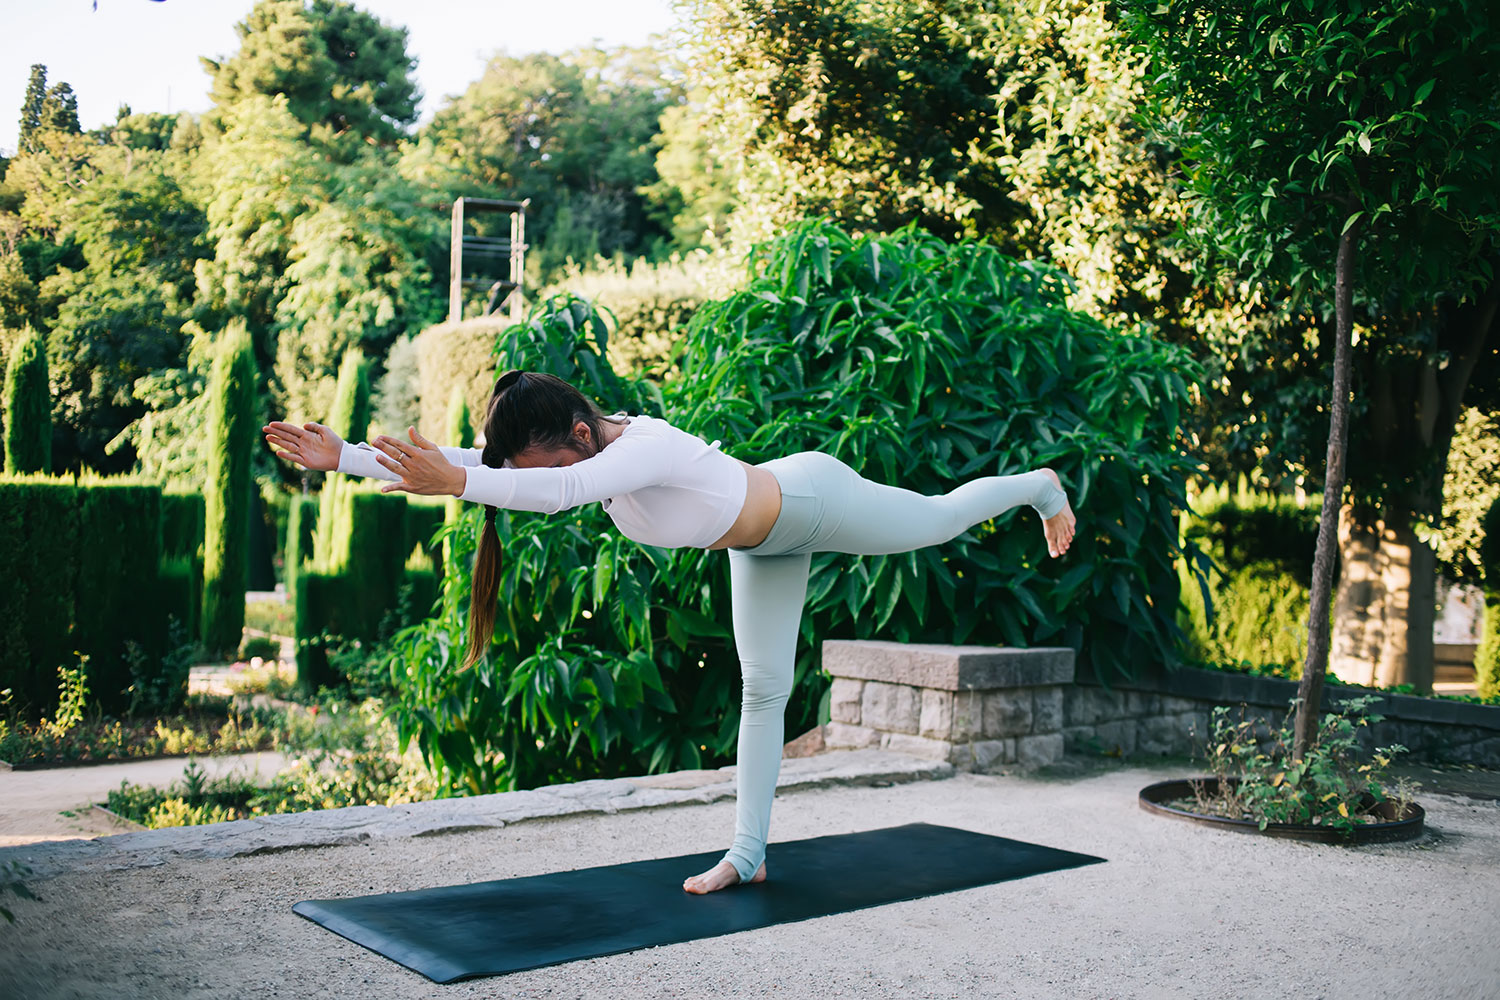 The Top 10 Luxury Yoga Retreats in Europe 2020 Guide